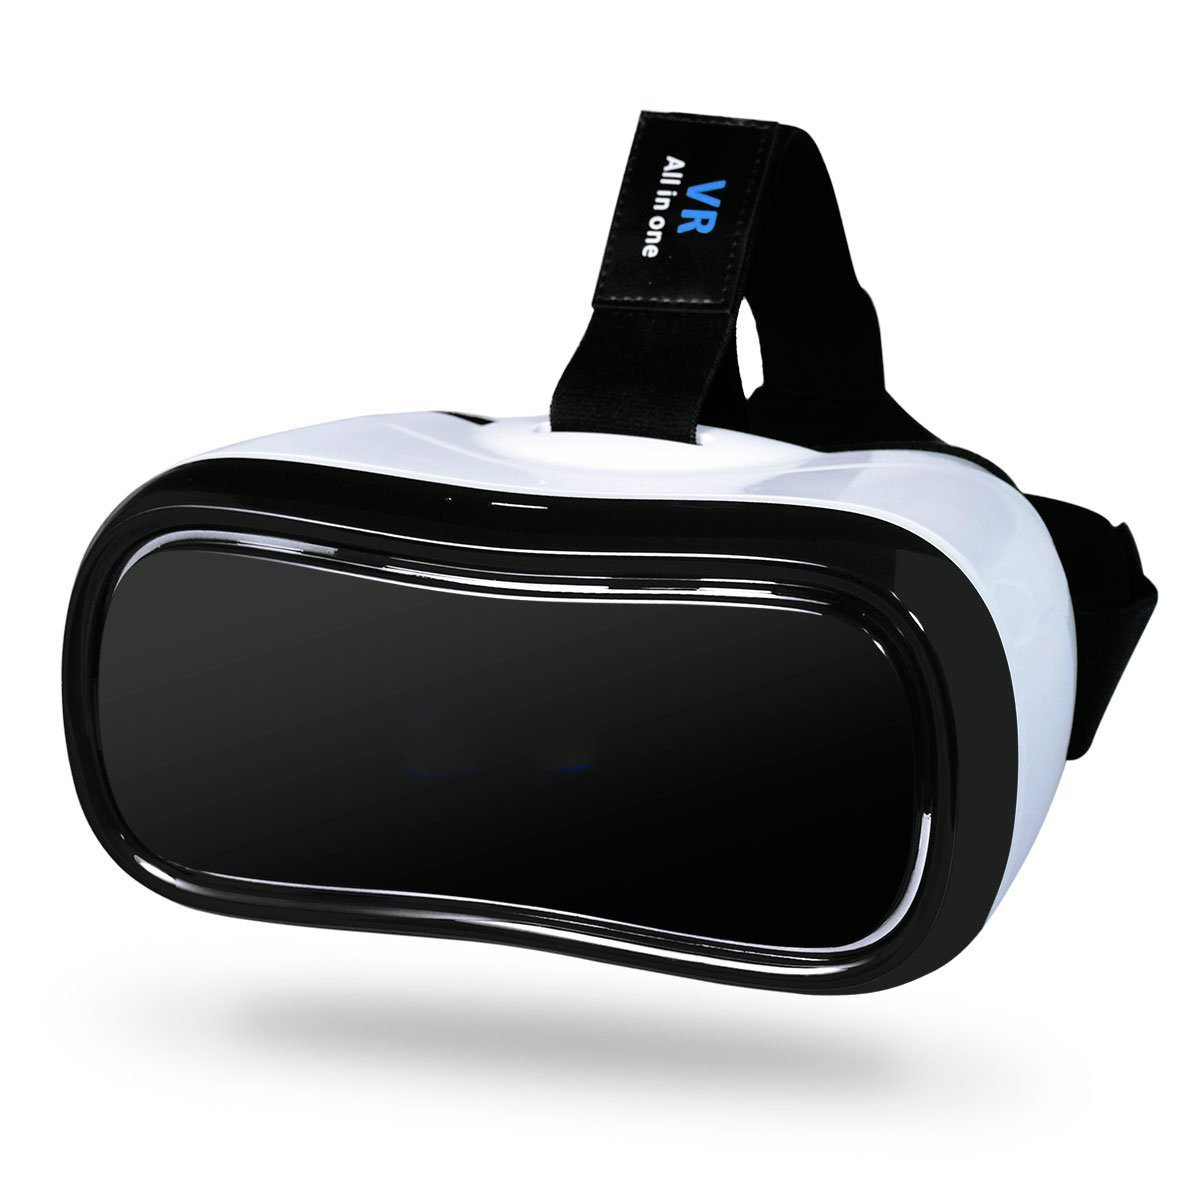 Livehomes 3D VR All in One Virtual Reality Headset WiFi 2.4G Bluetooth HDMI 1080P 360 Viewing Immersive Supports TF Card for PC Movie and PS4 Xbox Games Youtube Google Play